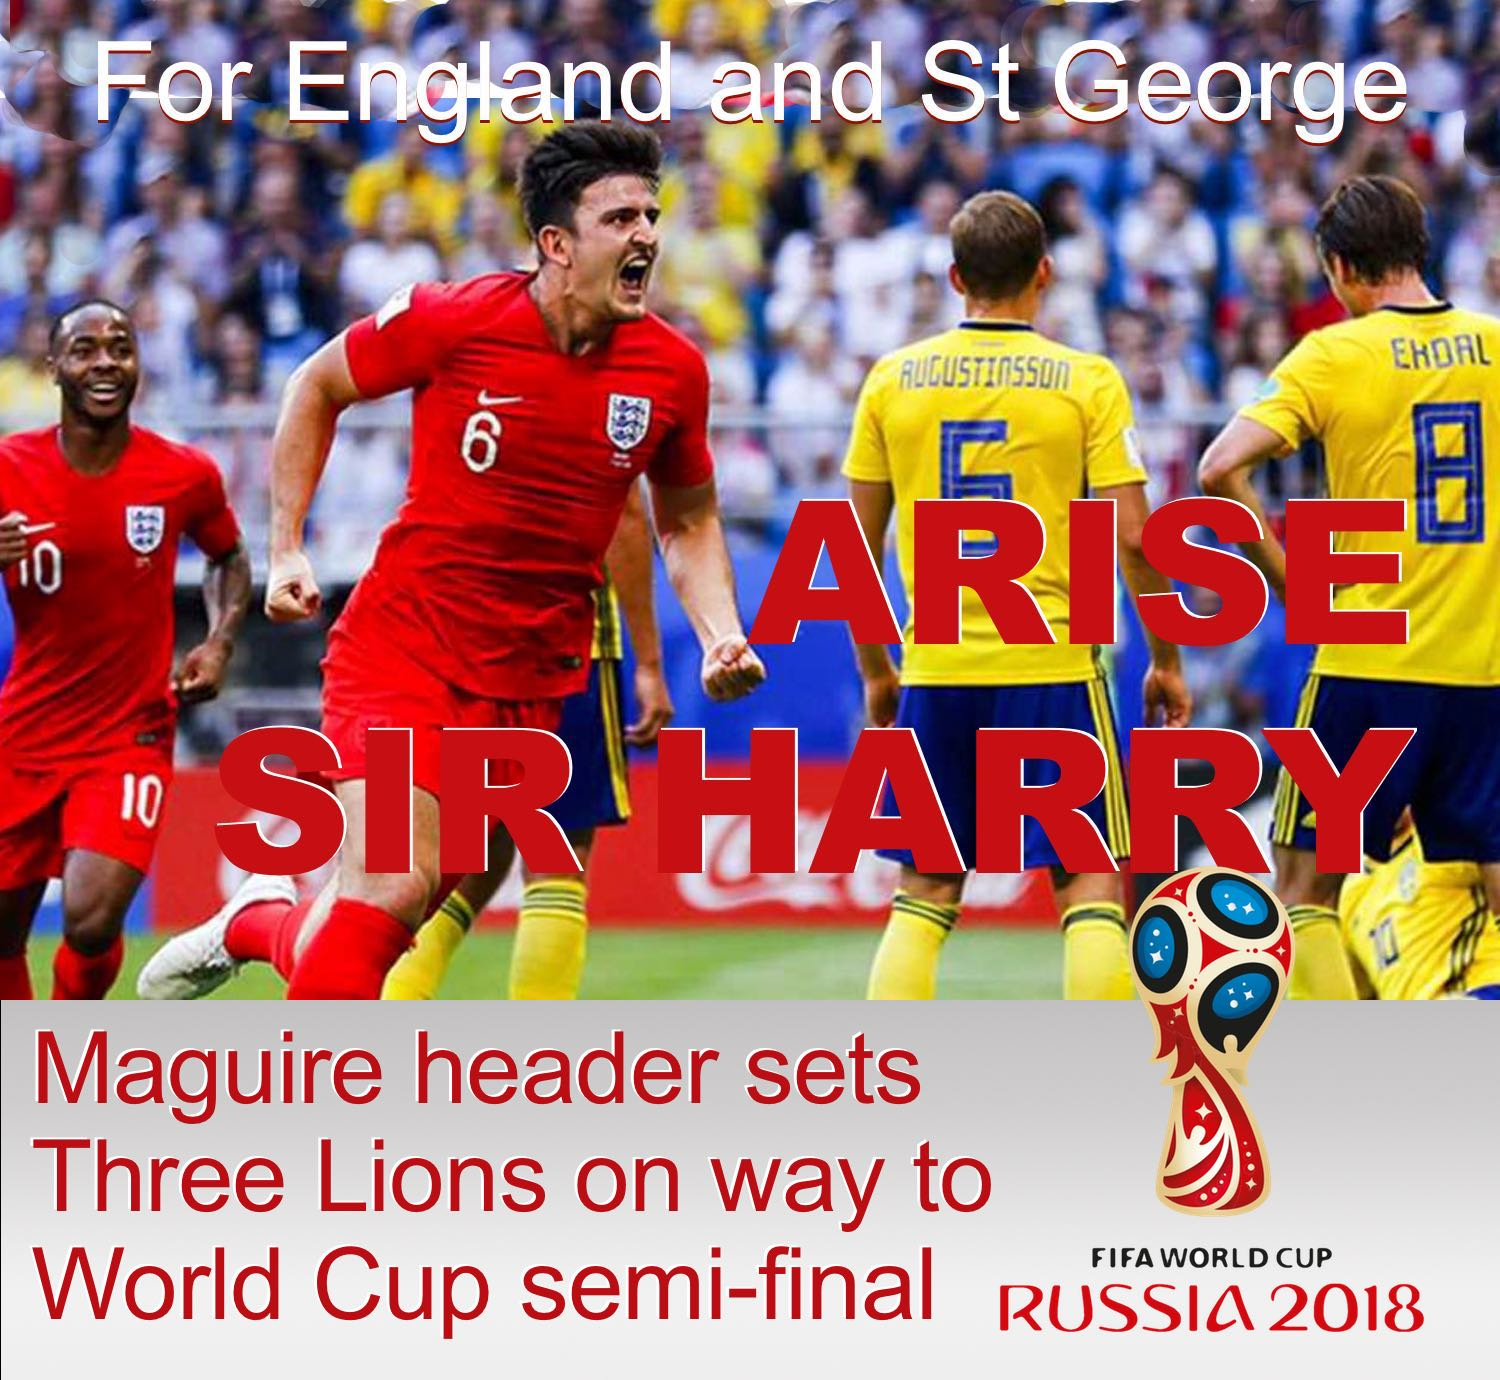 Former Sheffield United defender Harry Maguire confirmed he is one of English football's hottest properties after helping England into their first World Cup semi-final for 28 years